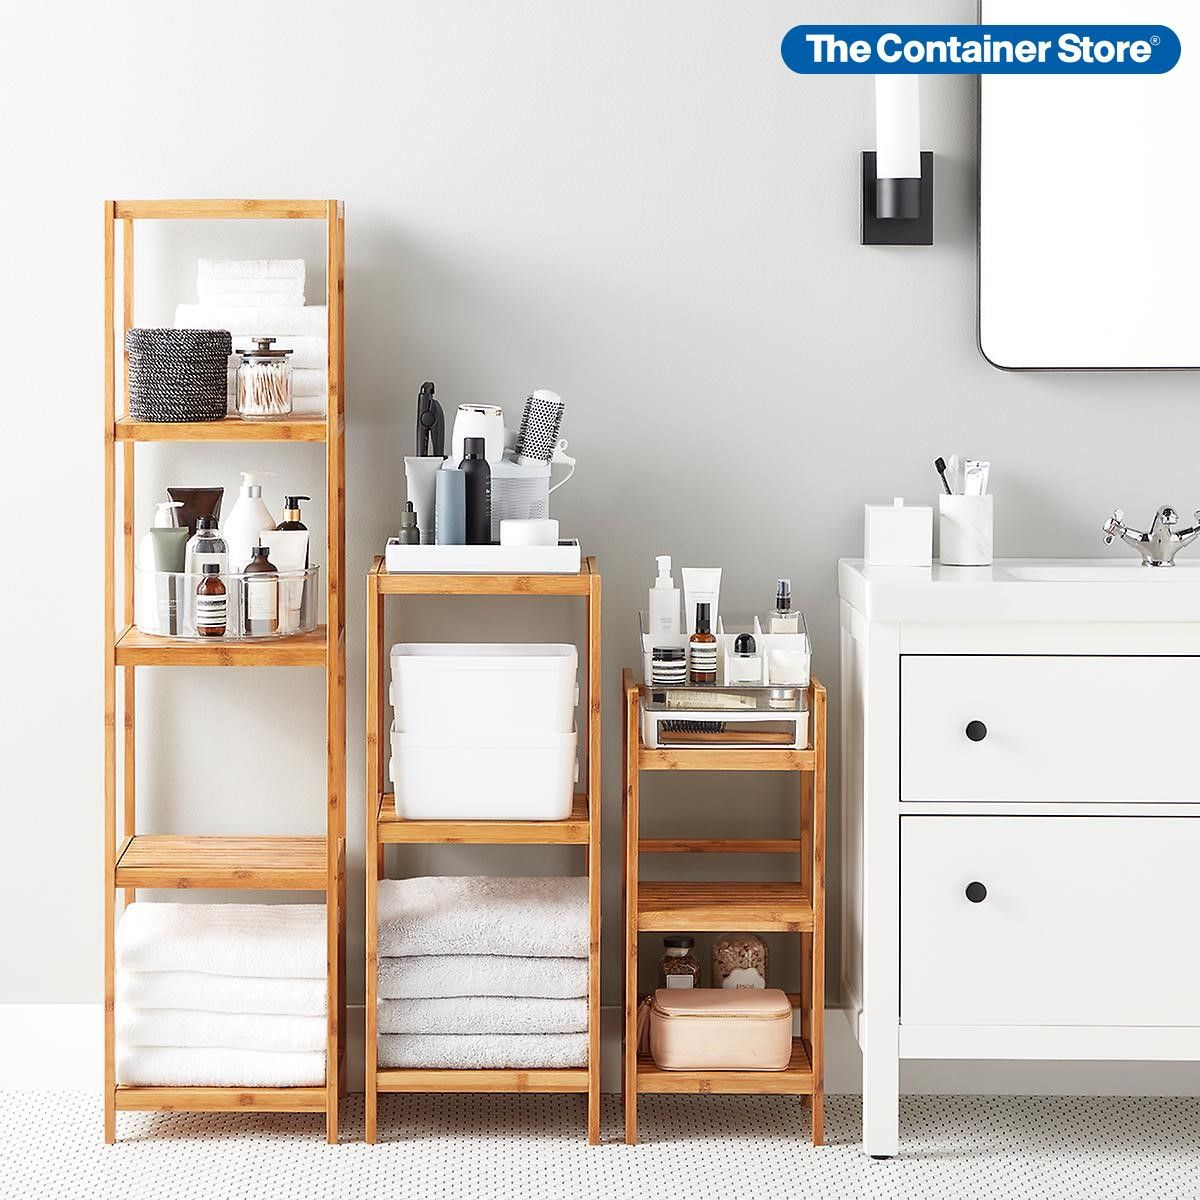 Shop Shelving Solutions That Are Suitable For Spaces Both Big And Small Pictured 5 Tier Bamboo Tower 3 Tier Bamboo To In 2020 Bamboo Shelf Bathroom Storage Shelves